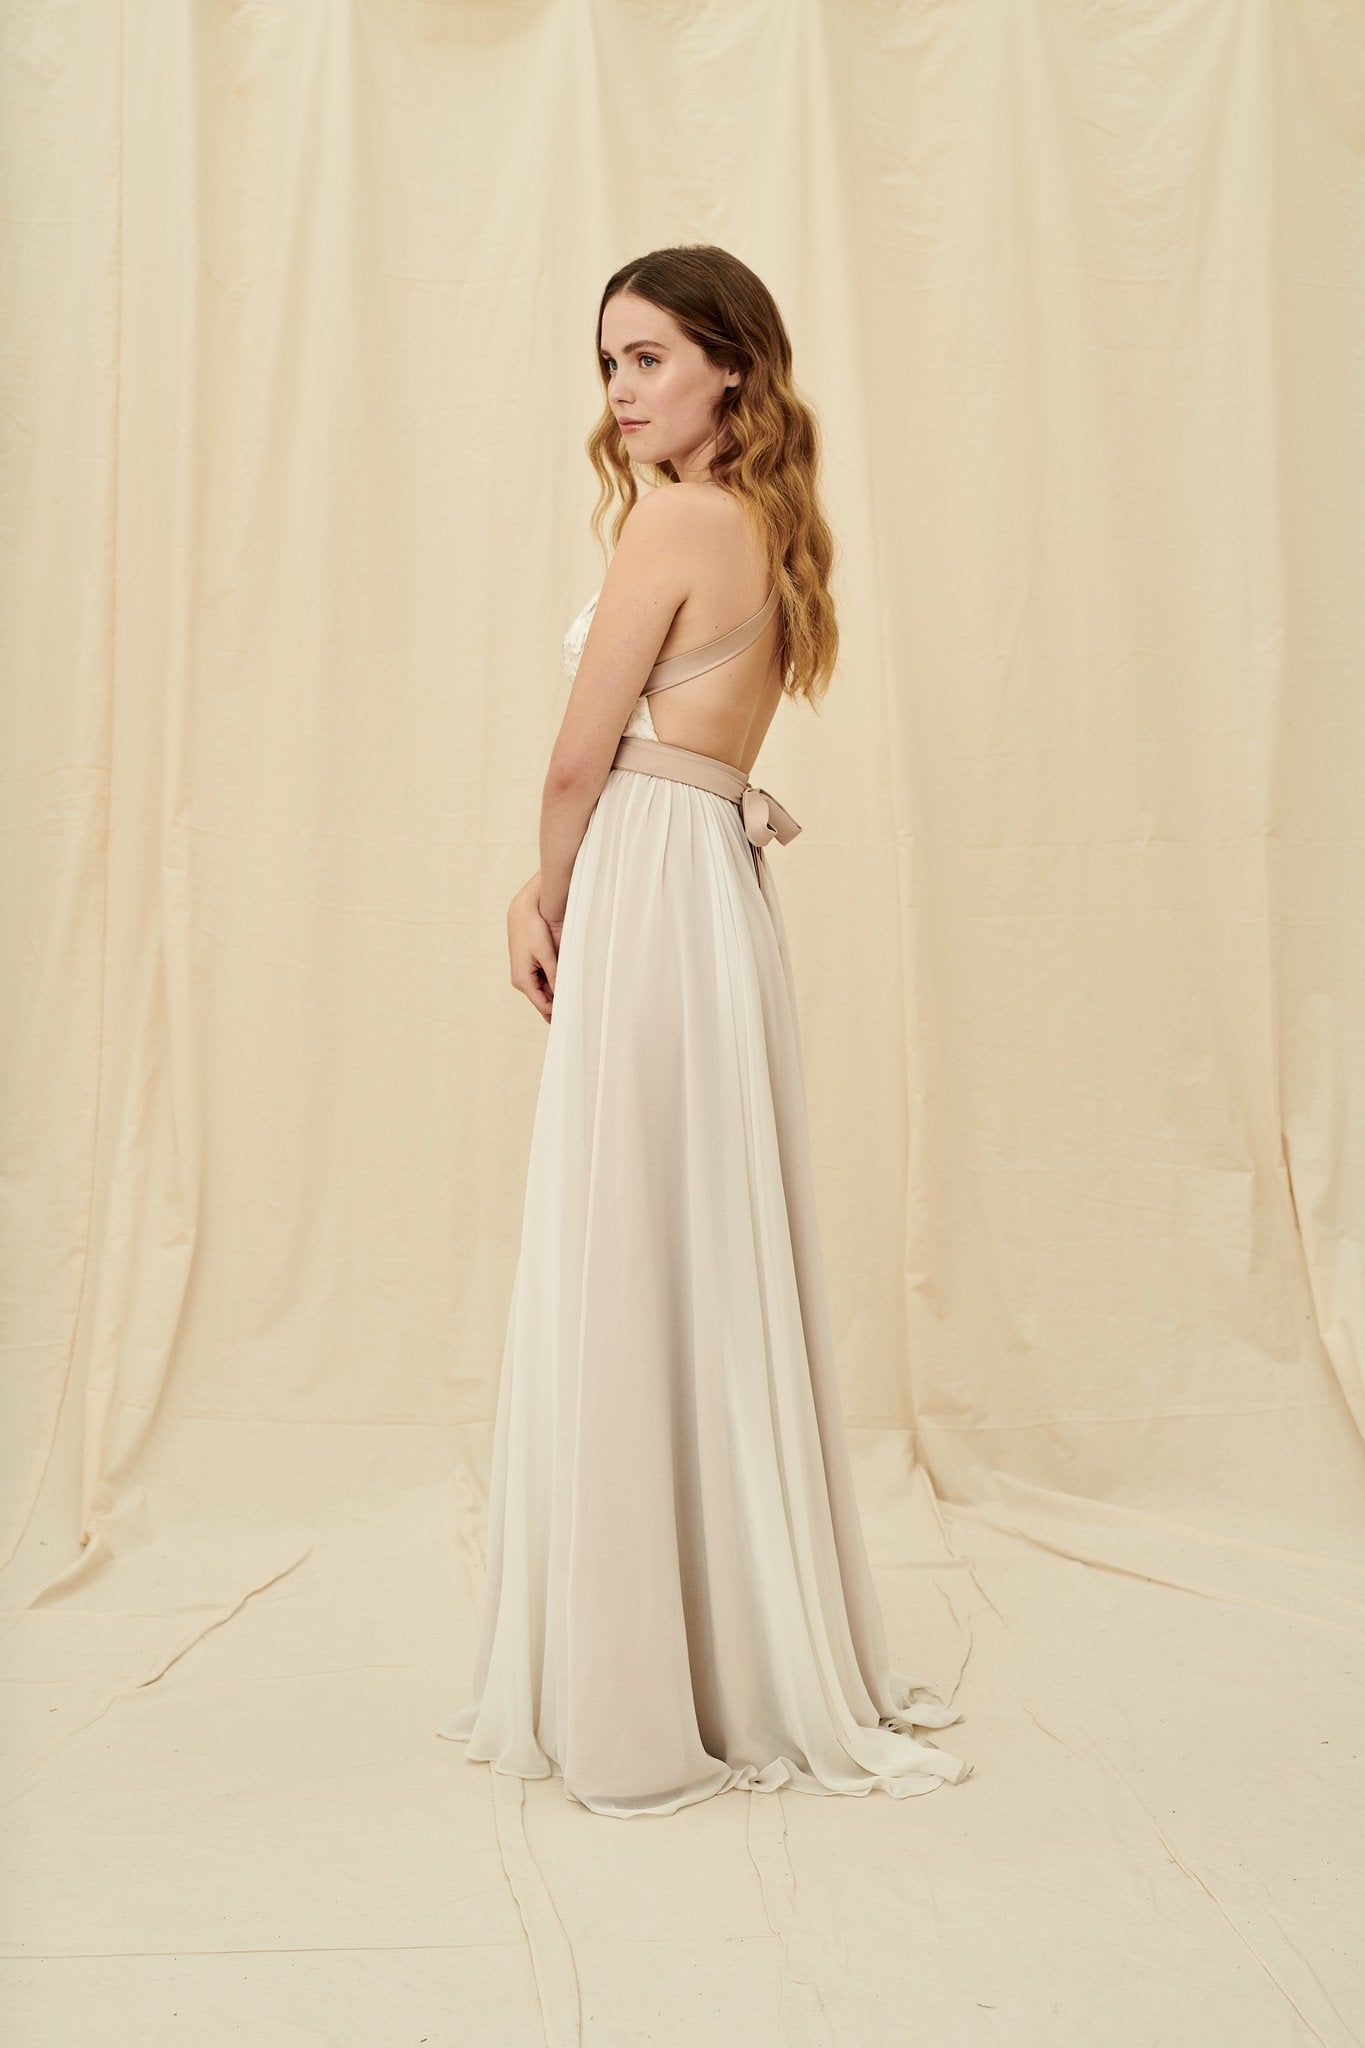 Unique coloured multiway wedding dress with a lightweight flowy chiffon skirt by Truvelle